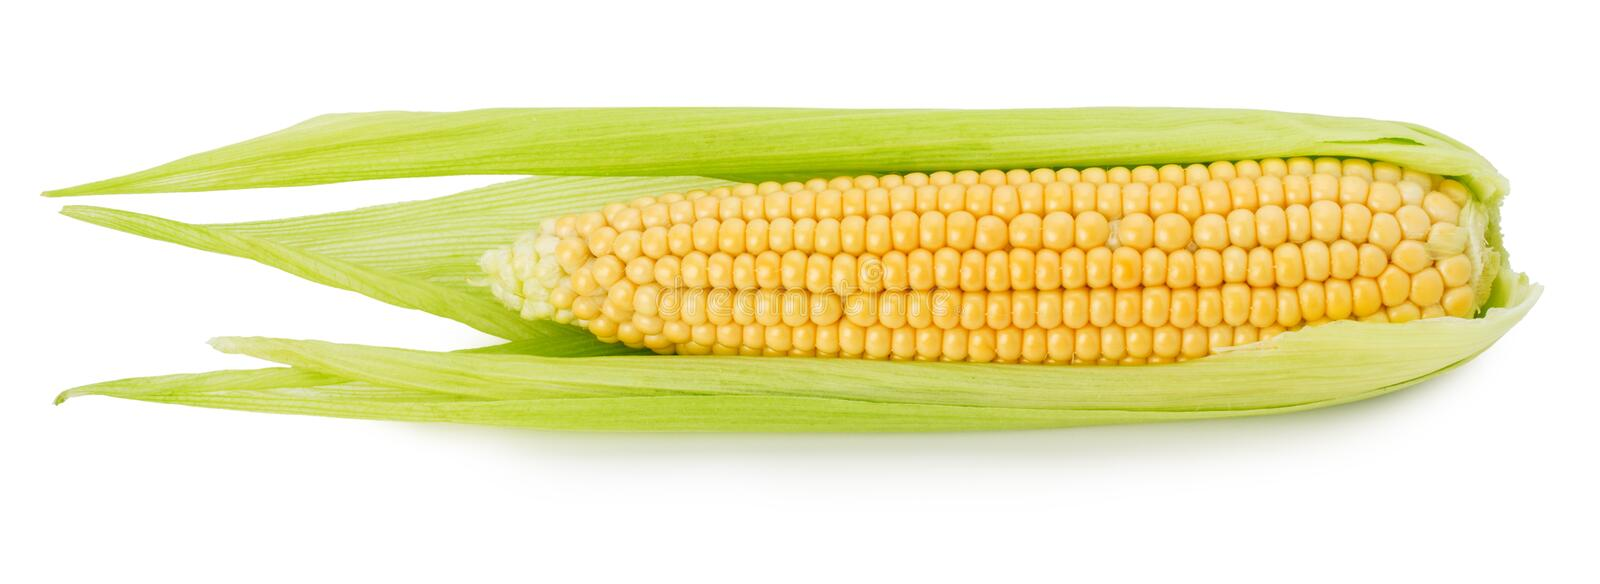 Fresh corn ear isolated on the white background stock image